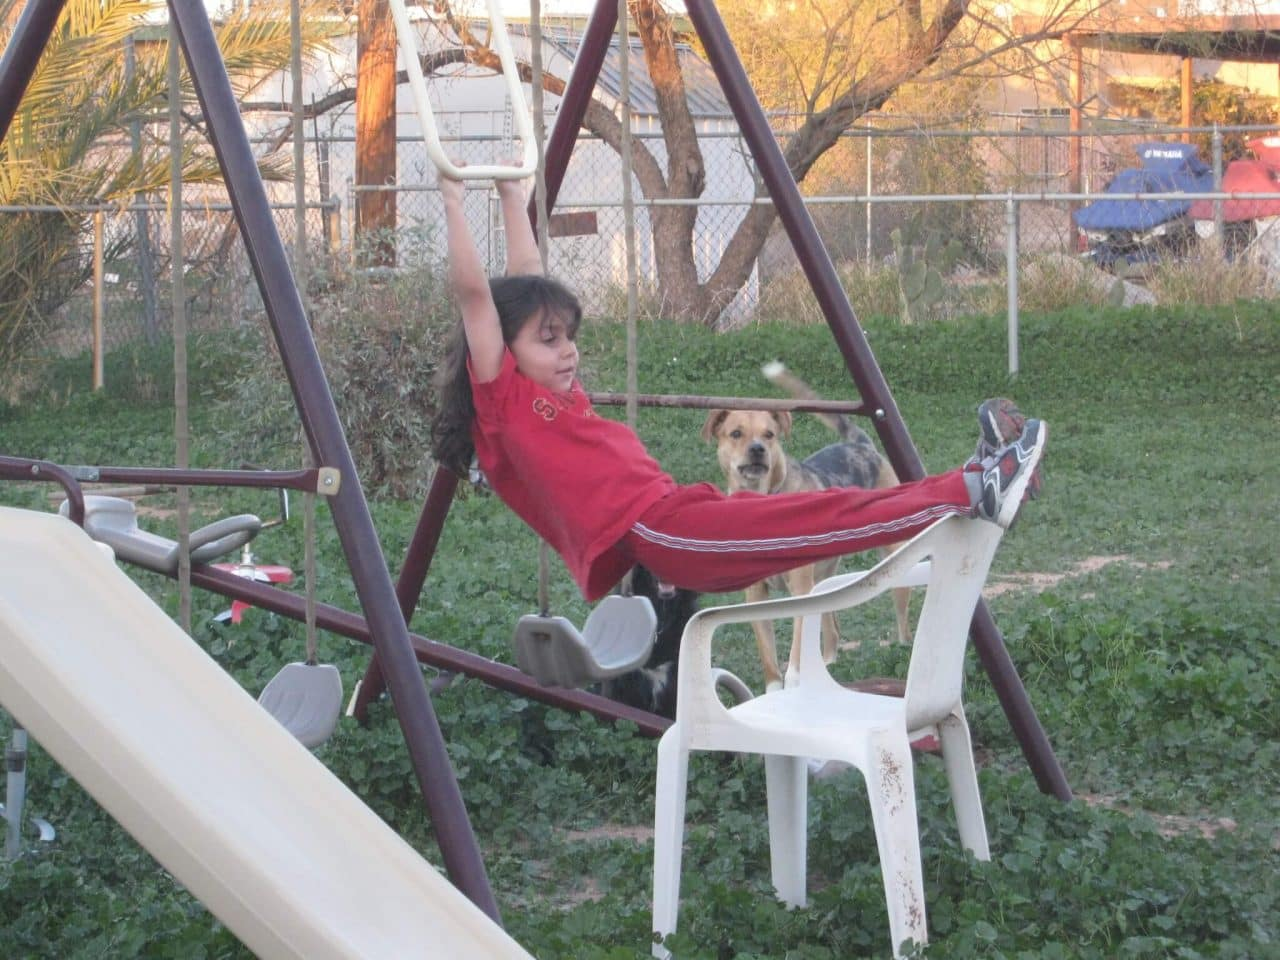 Young child swinging on the trapeze bar of a swing set